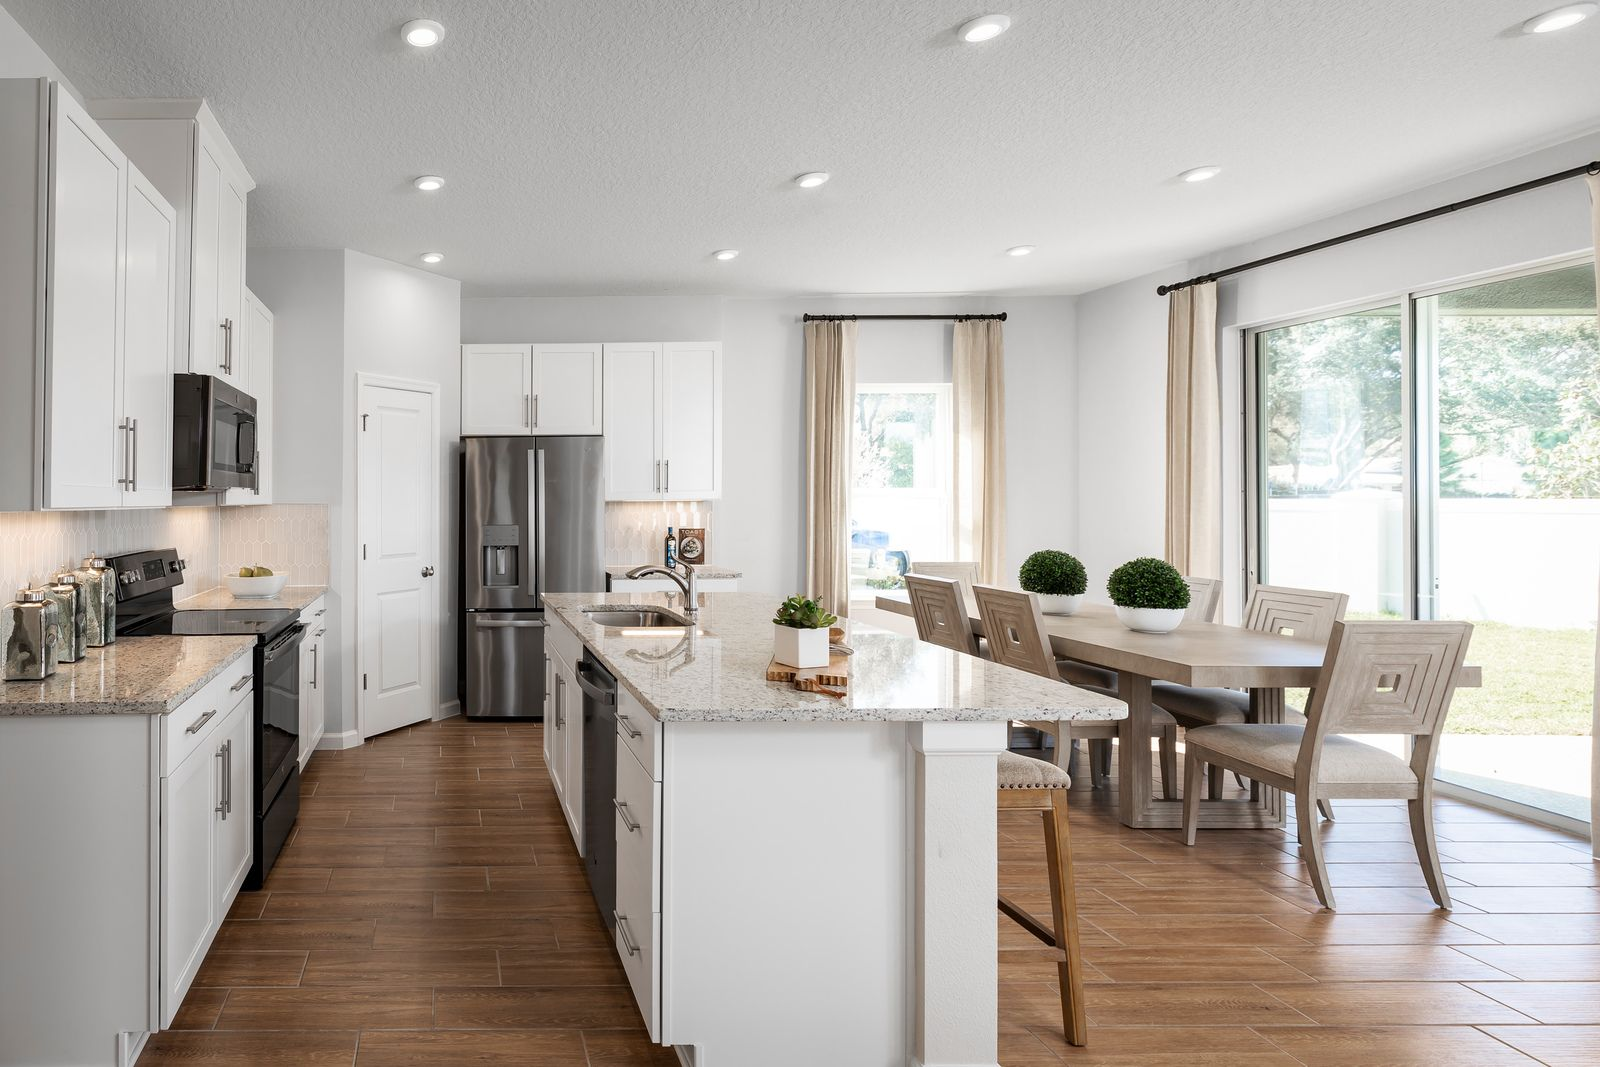 Kitchen featured in the Windermere By Ryan Homes in Orlando, FL